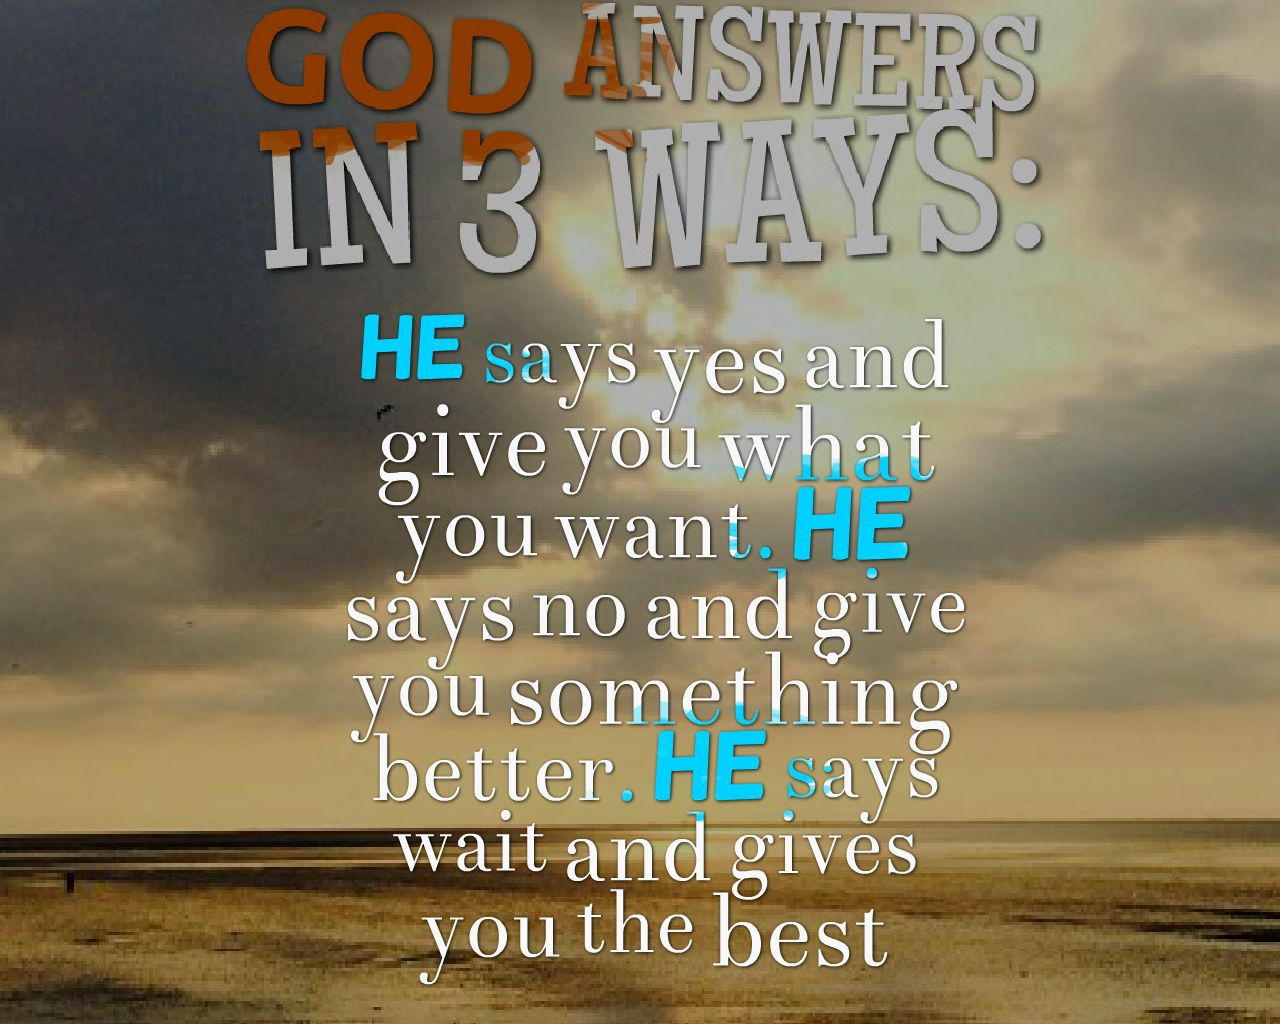 God answers in 3 ways: He says yes and give you what you